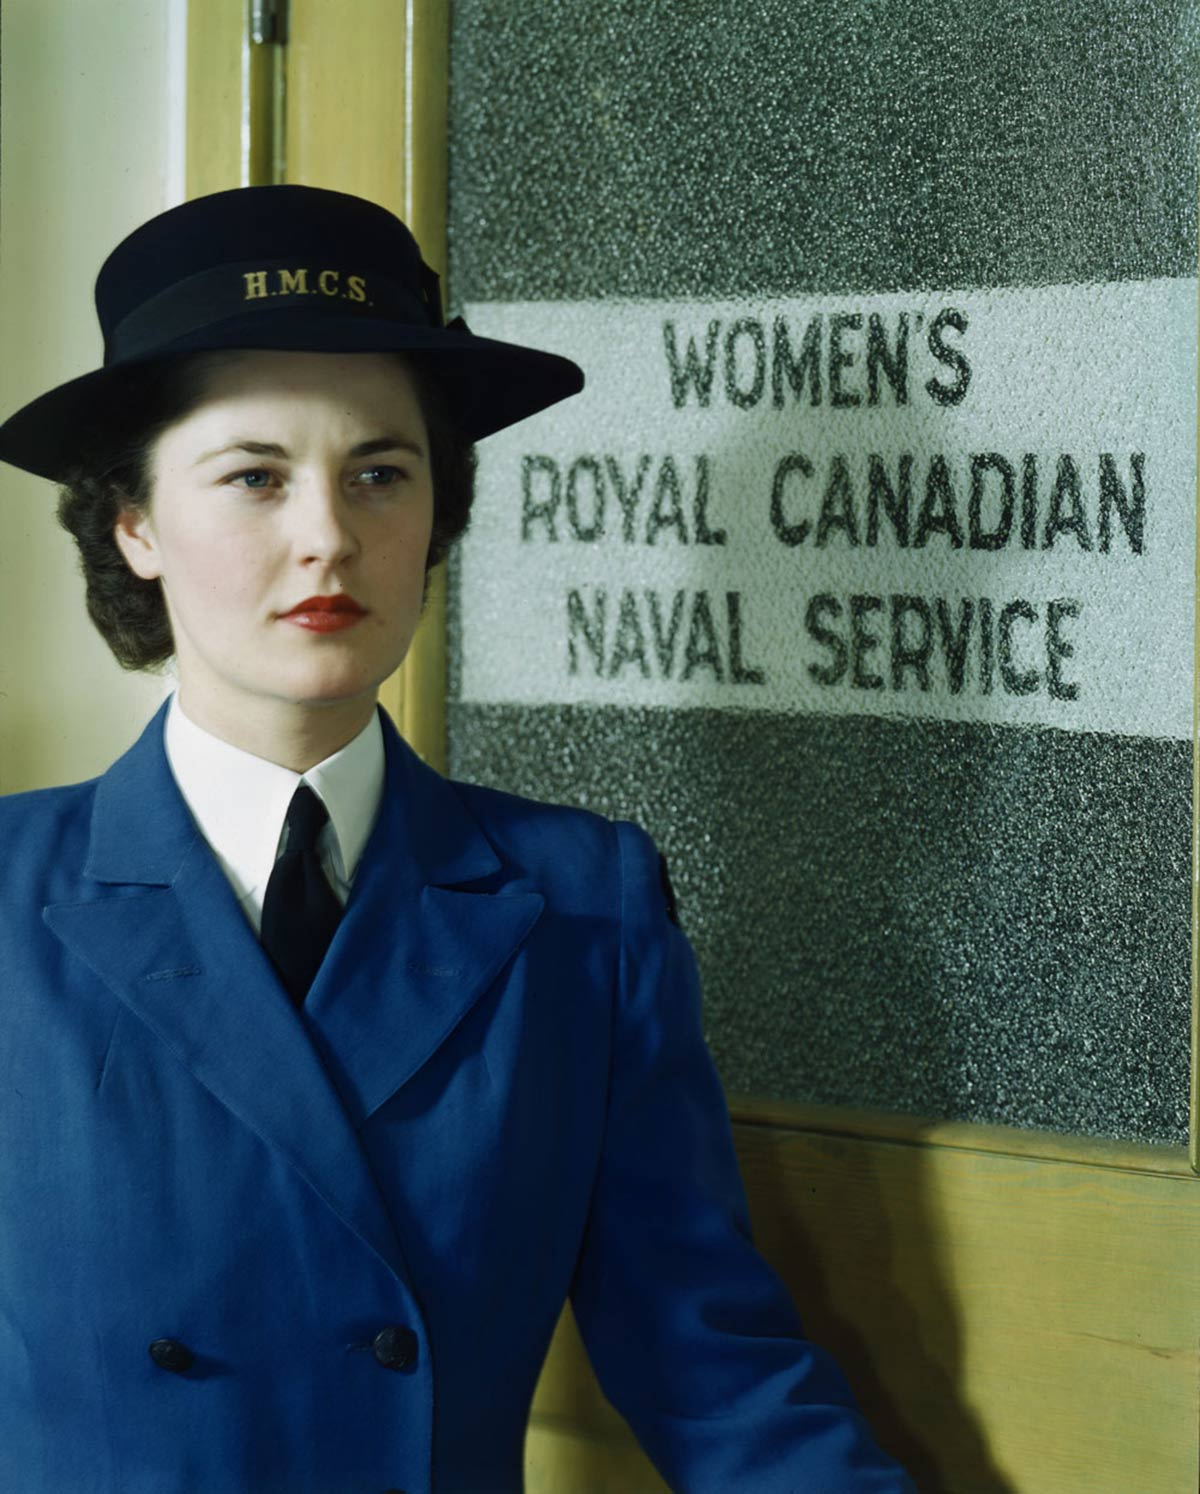 1940s-WW2-Women-of-Canada-WRCNS-summer-uniform-1943